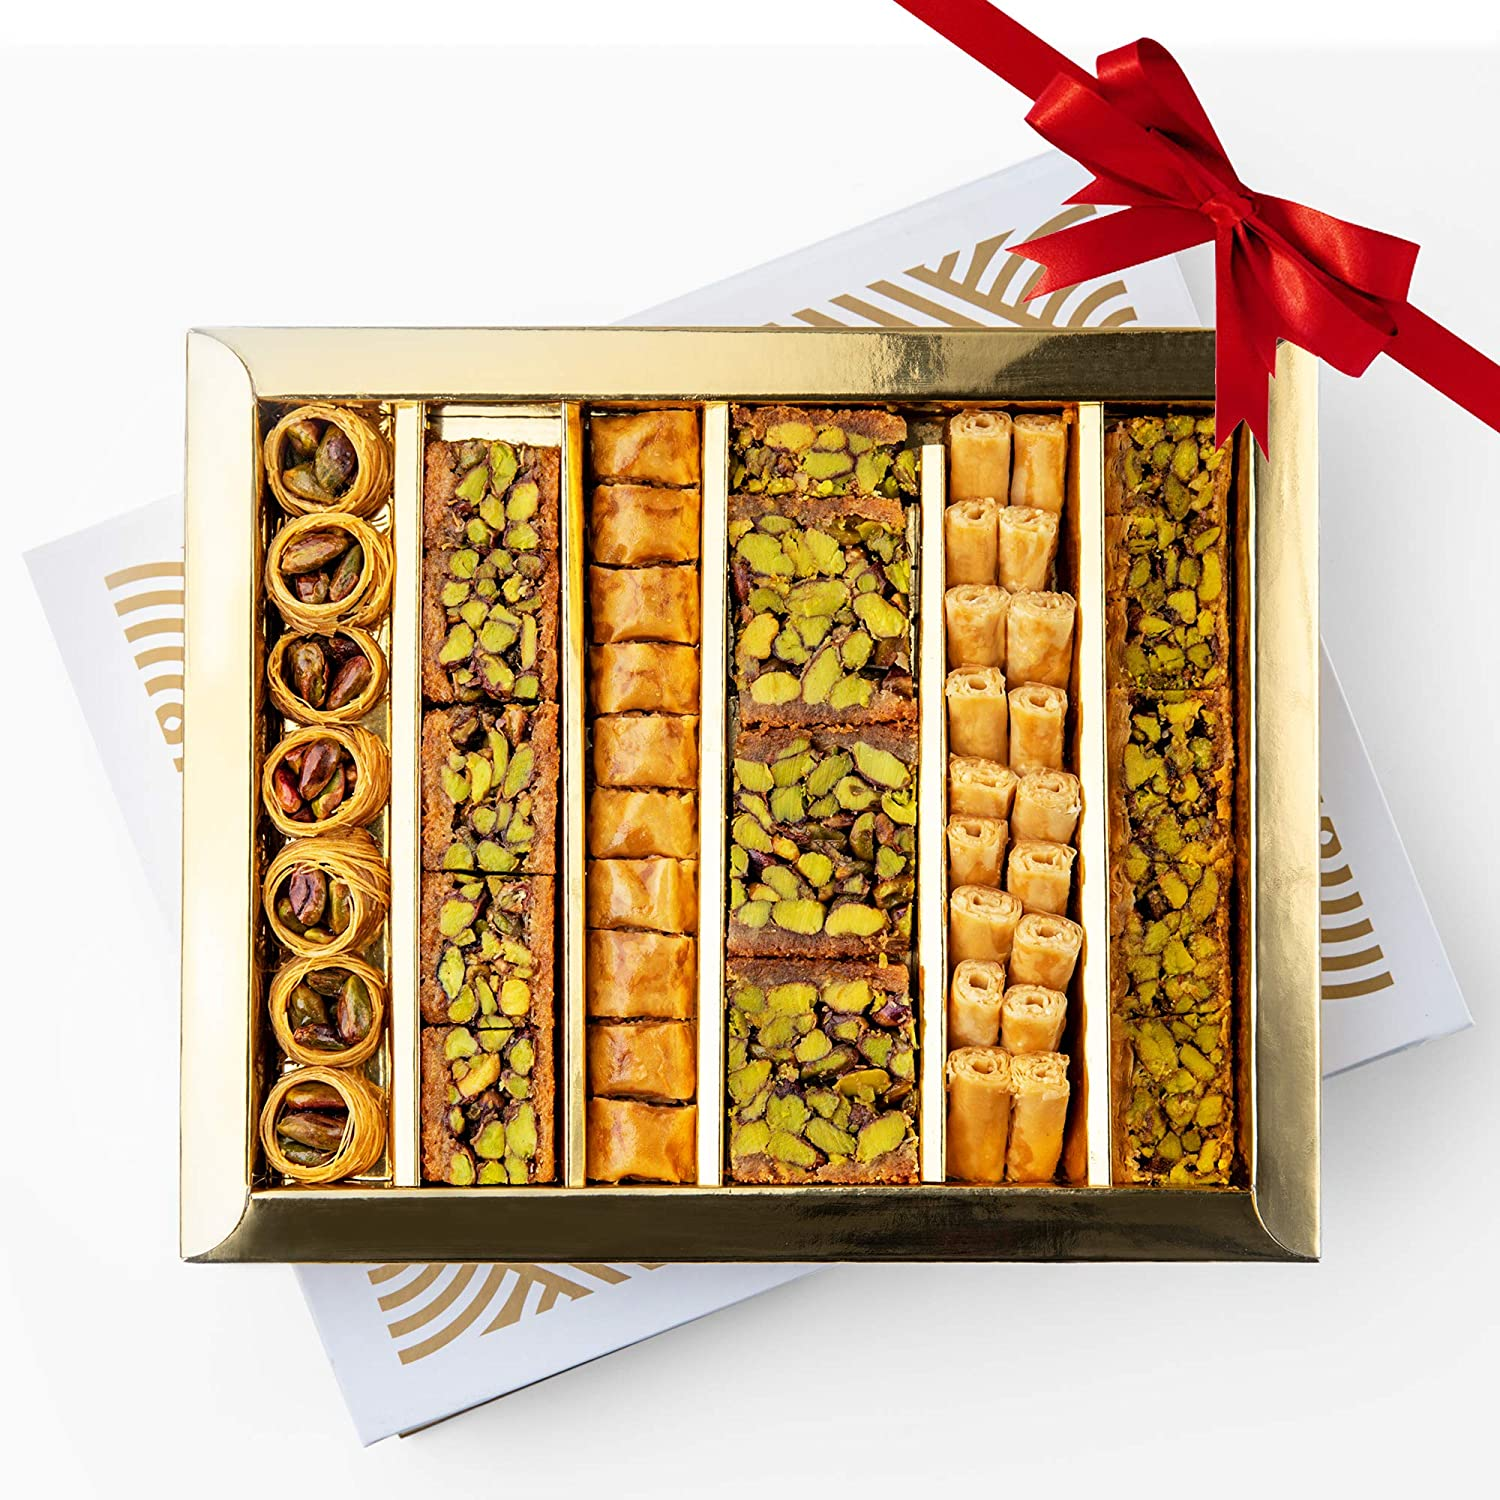 HL Assorted Sweets Gift Box - Baklava, Pistachio and Almond - Authentic Middle East Sweets - Elegant Gift Box (Assorted, Large)